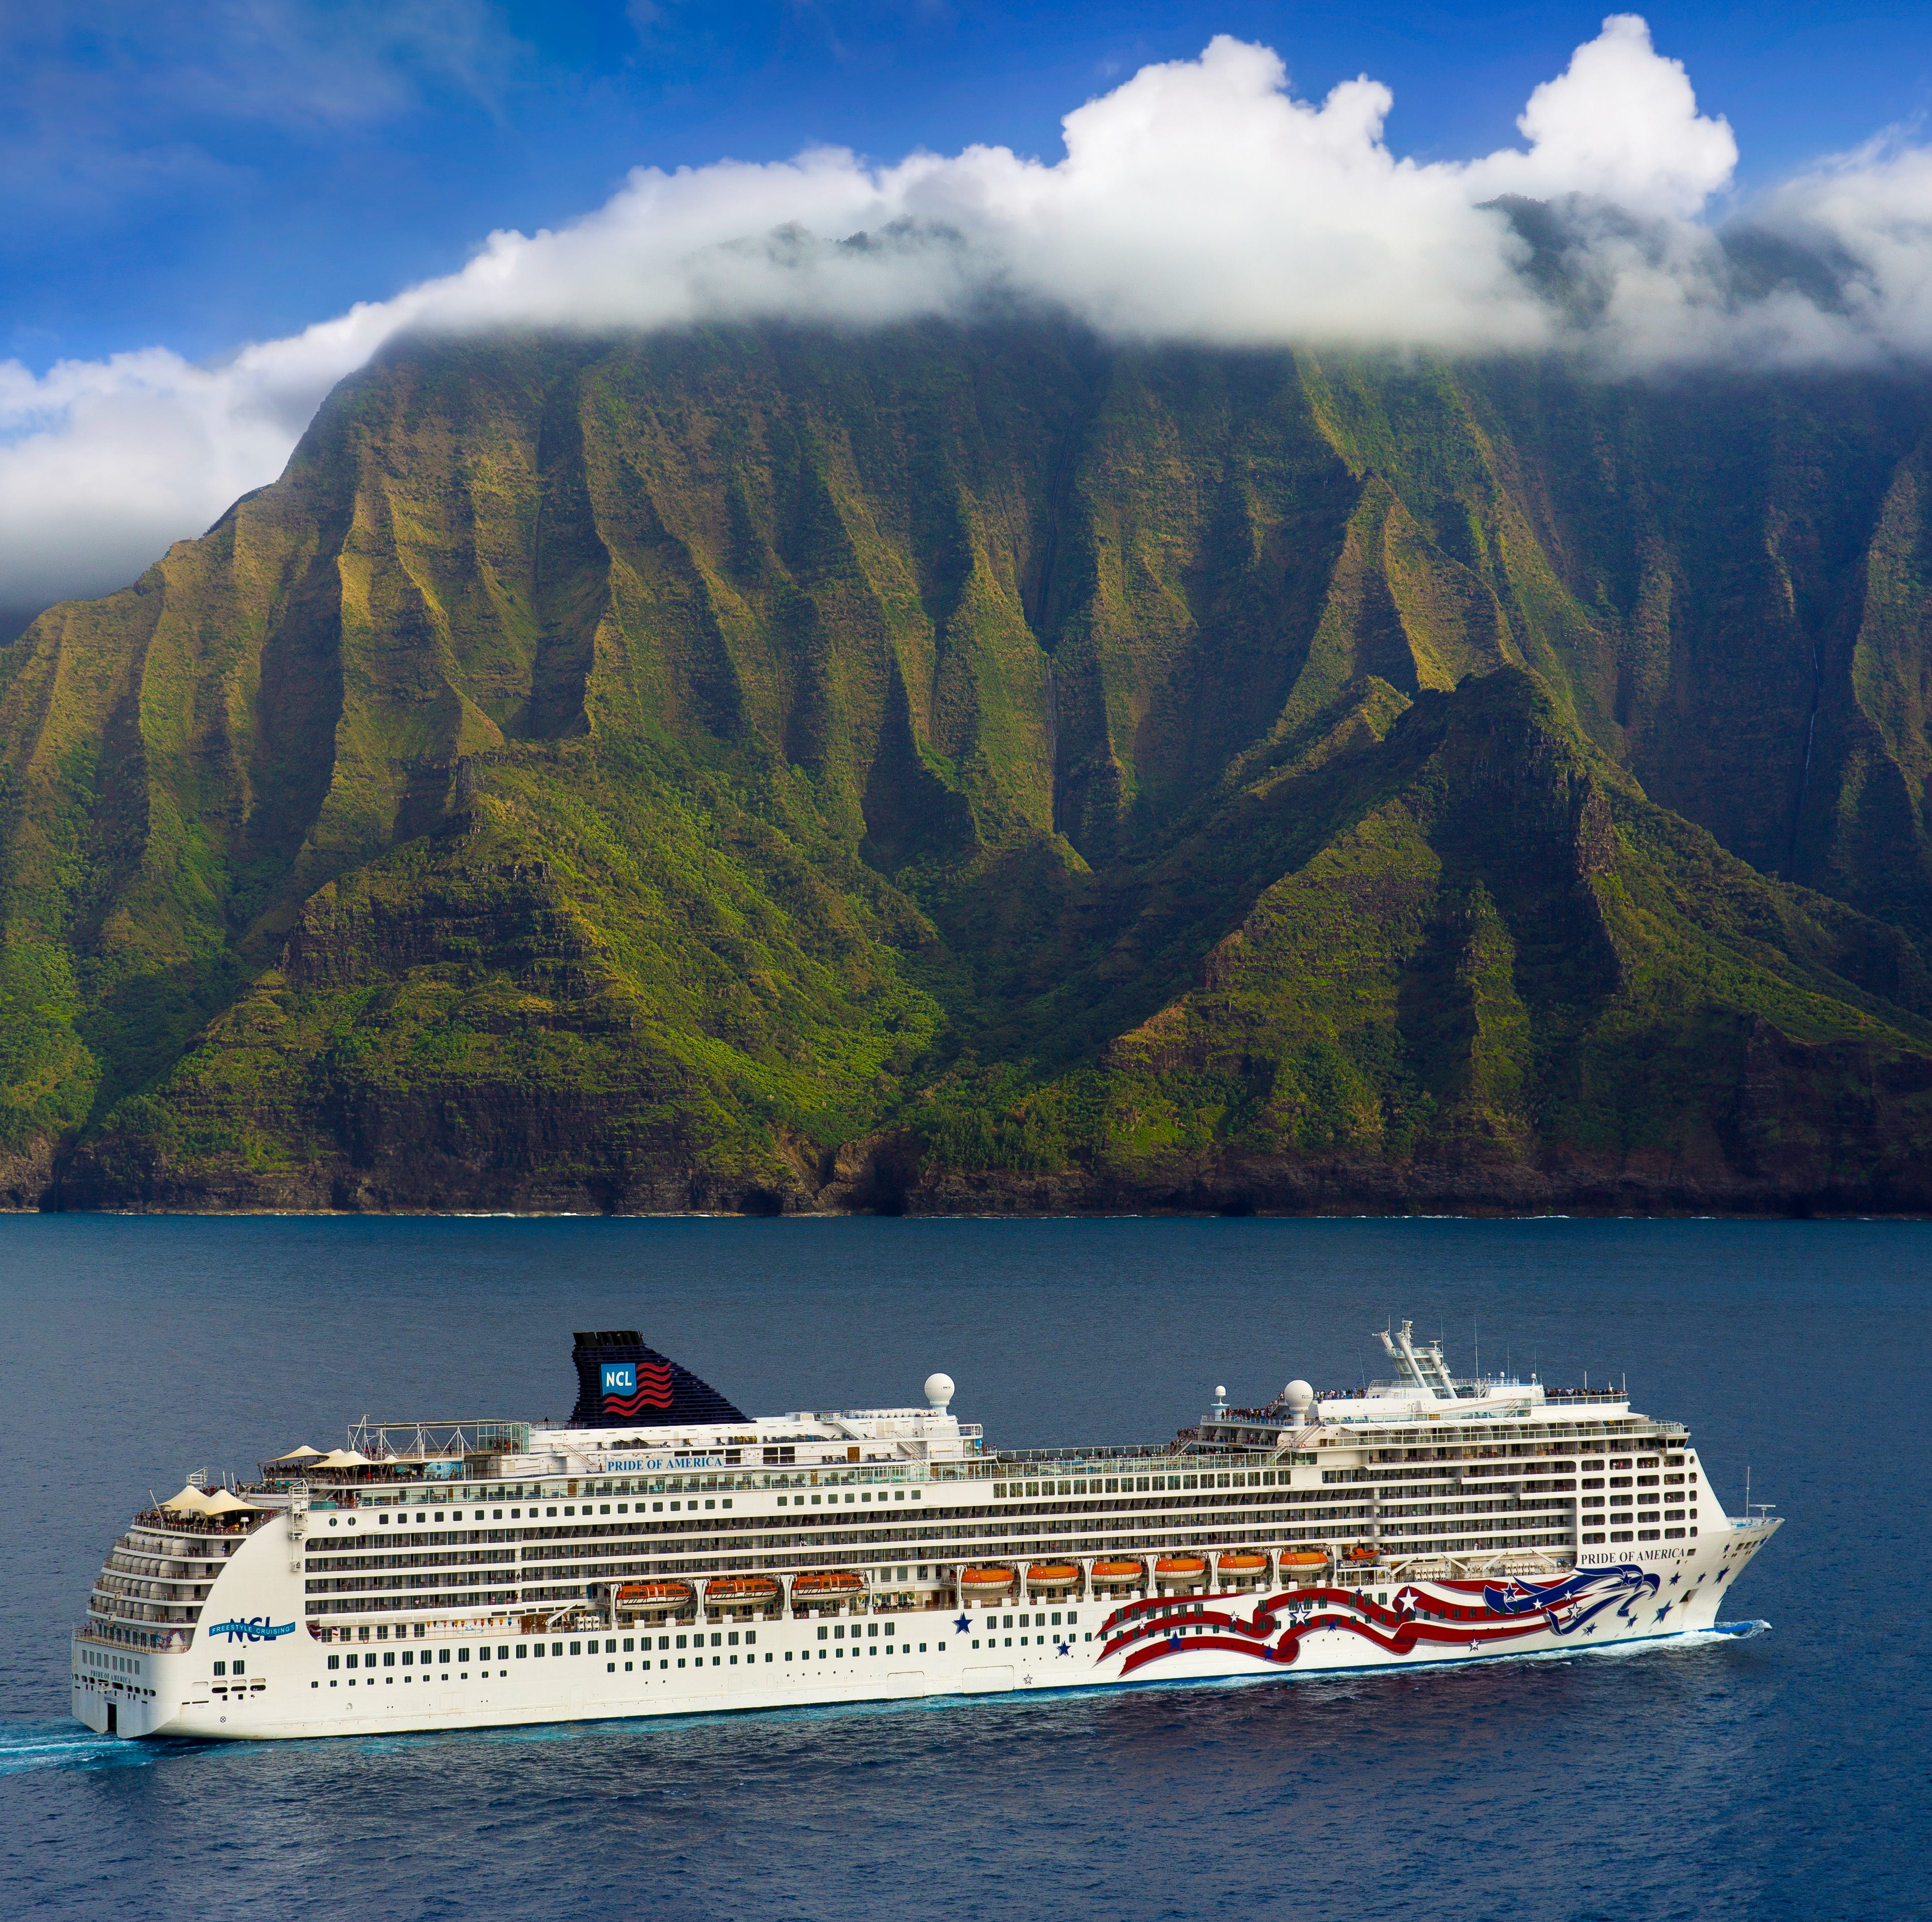 Based in Honolulu on the island of Oahu, Pride of America departs every Saturday on seven-night voyages to the islands of Maui, Hawaii and Kauai. It's a unique itinerary that is offered by no other line.